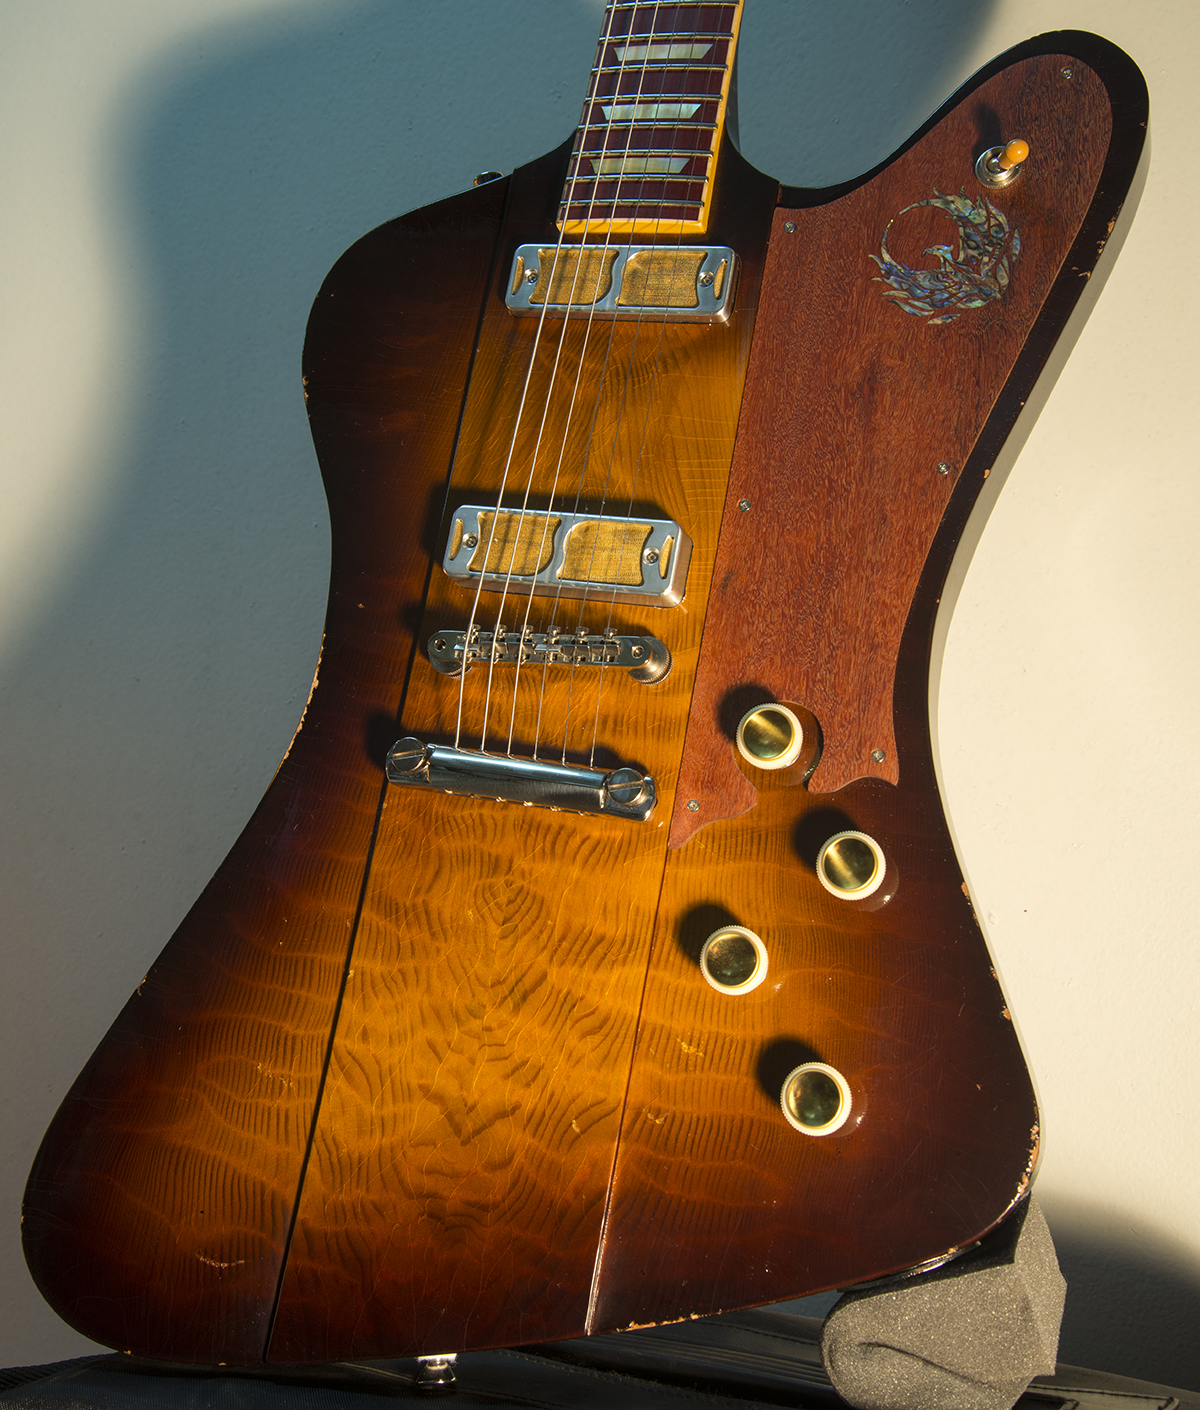 Ronin Phoenix with a 5A Flamed Redwood Top.